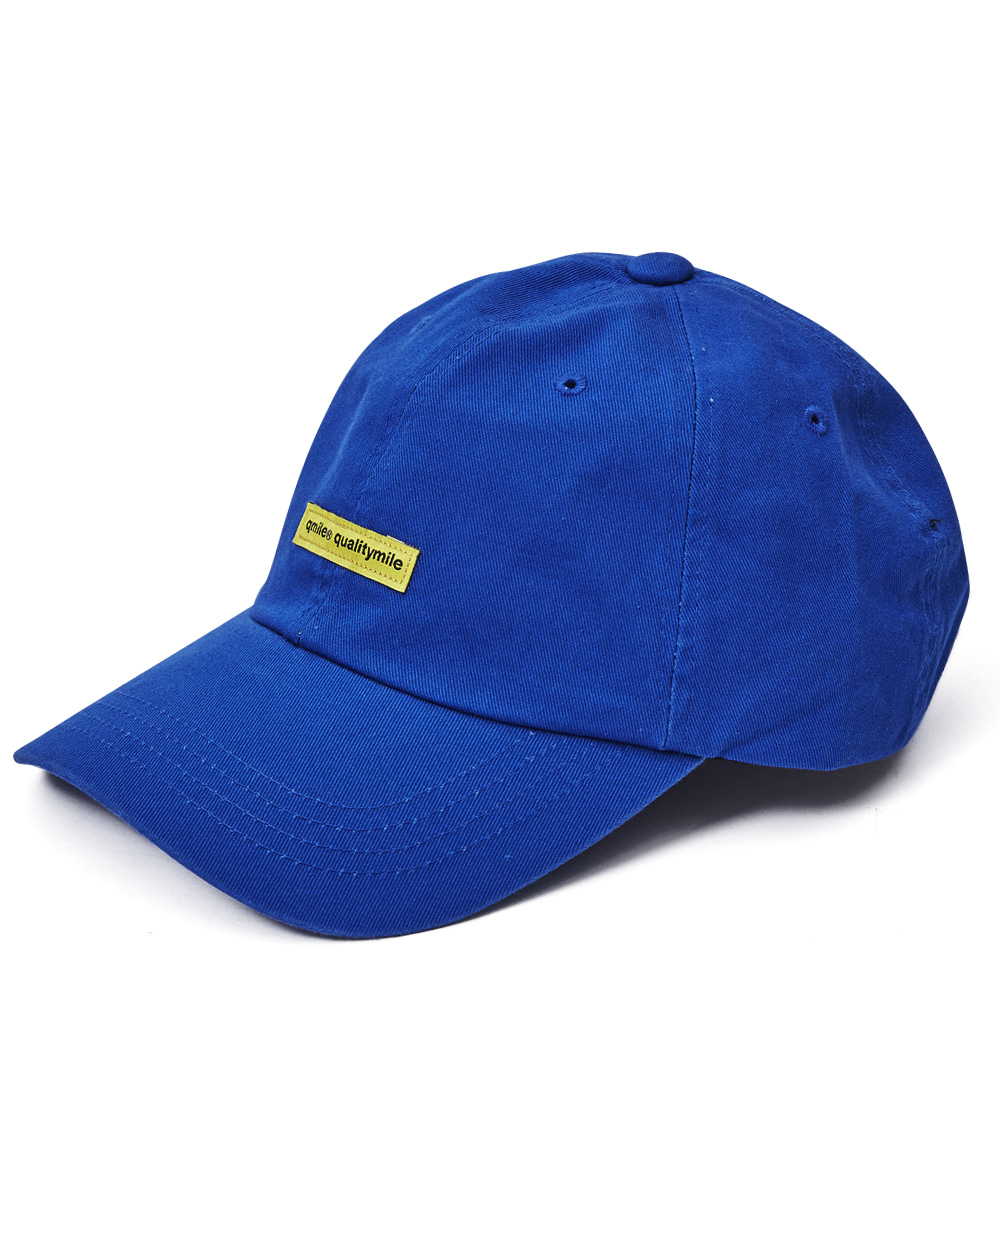 TYMAX YELLOW LABEL BALLCAP | BLUE